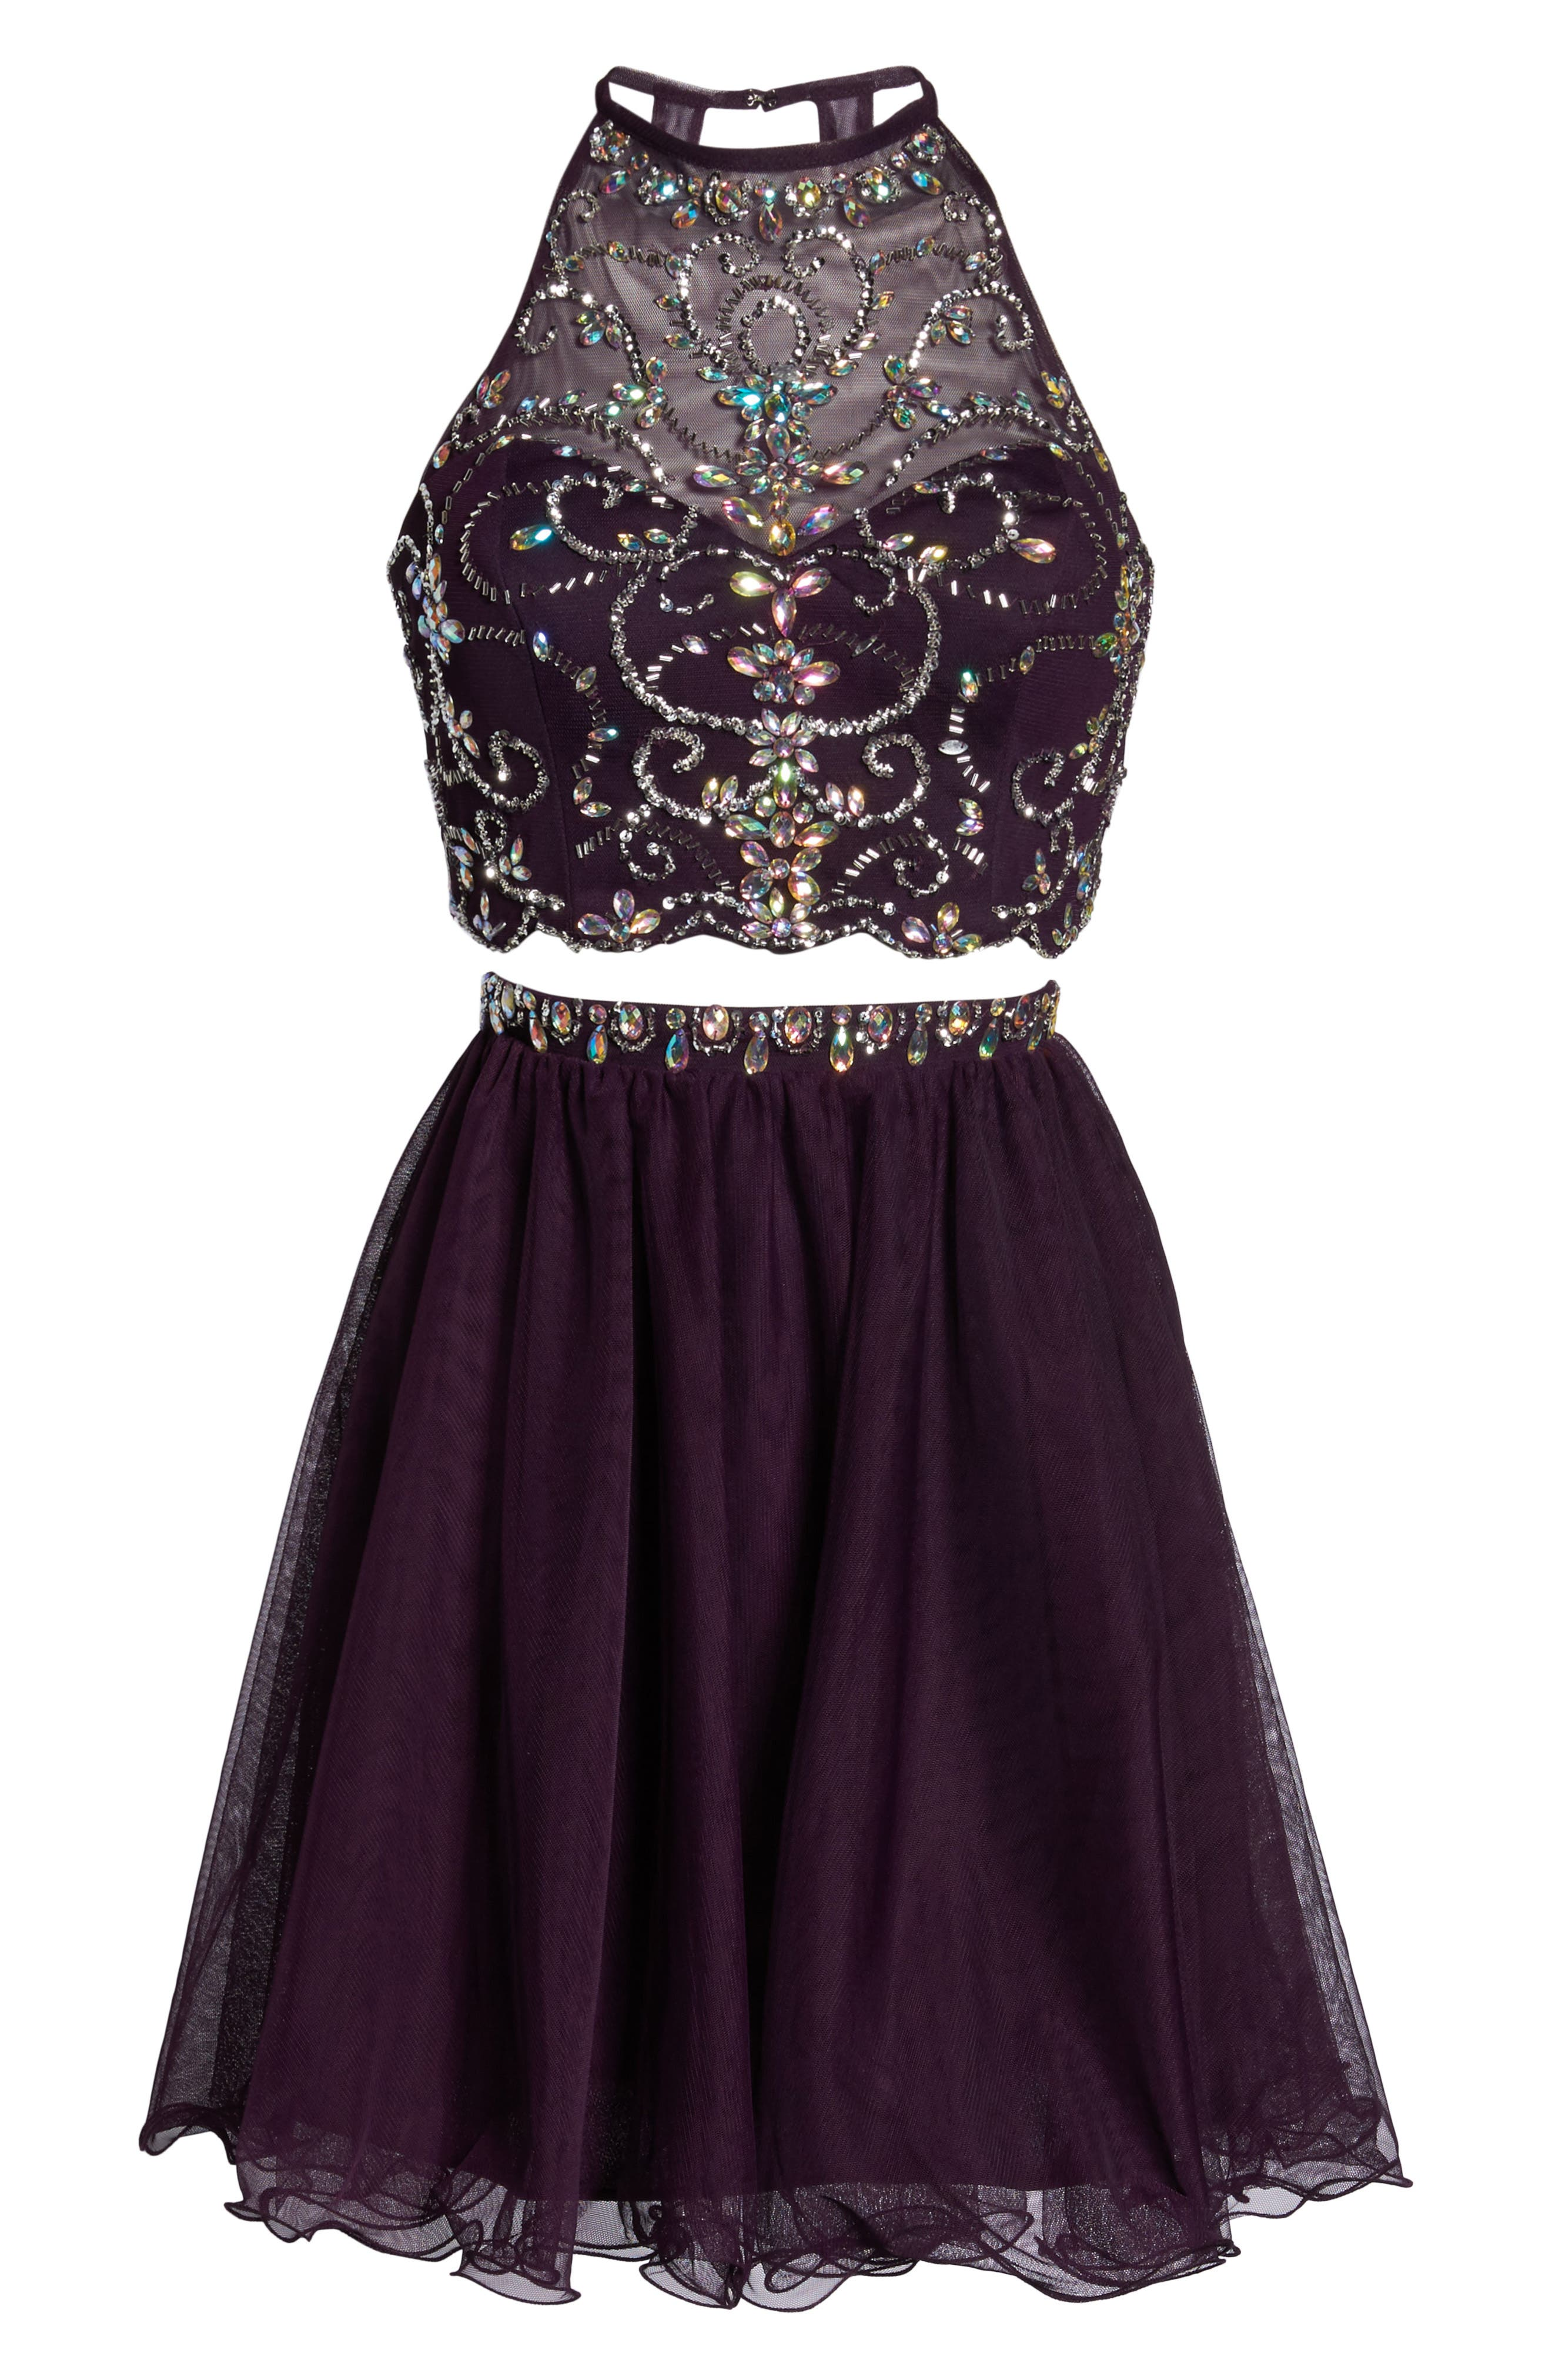 Embellished Two-Piece Fit & Flare Dress,                             Alternate thumbnail 6, color,                             510